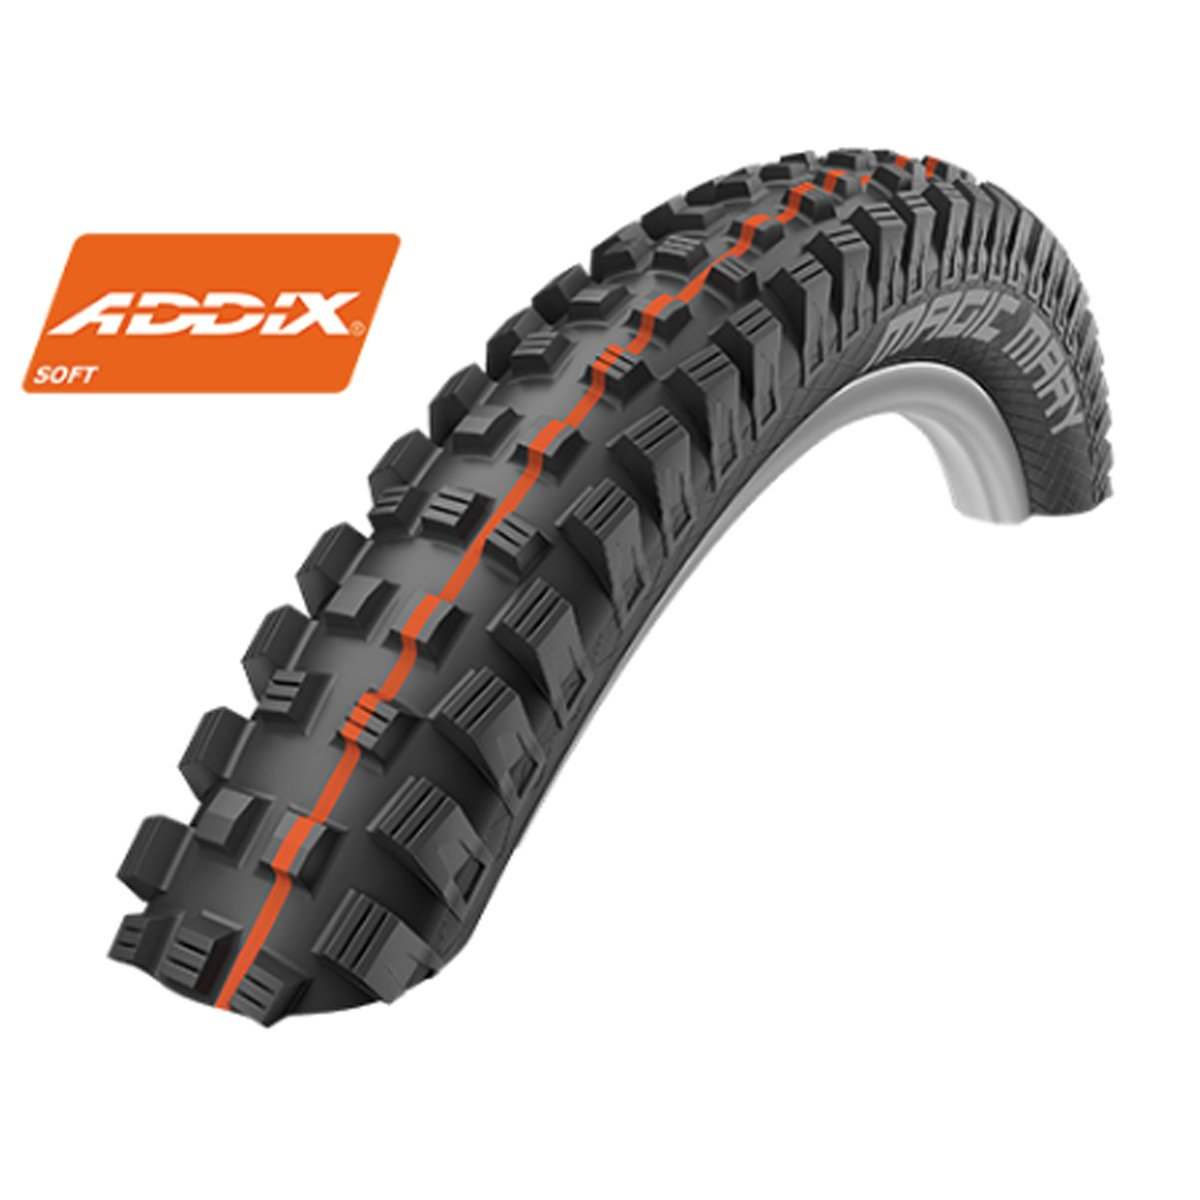 Schwalbe Magic Mary HS 447 Addix Evolution蛇皮Tubeless Easyマウンテン自転車タイヤ – 折りたたみ B0777QMFCRブラック 27.5 x 2.80 Addix Soft